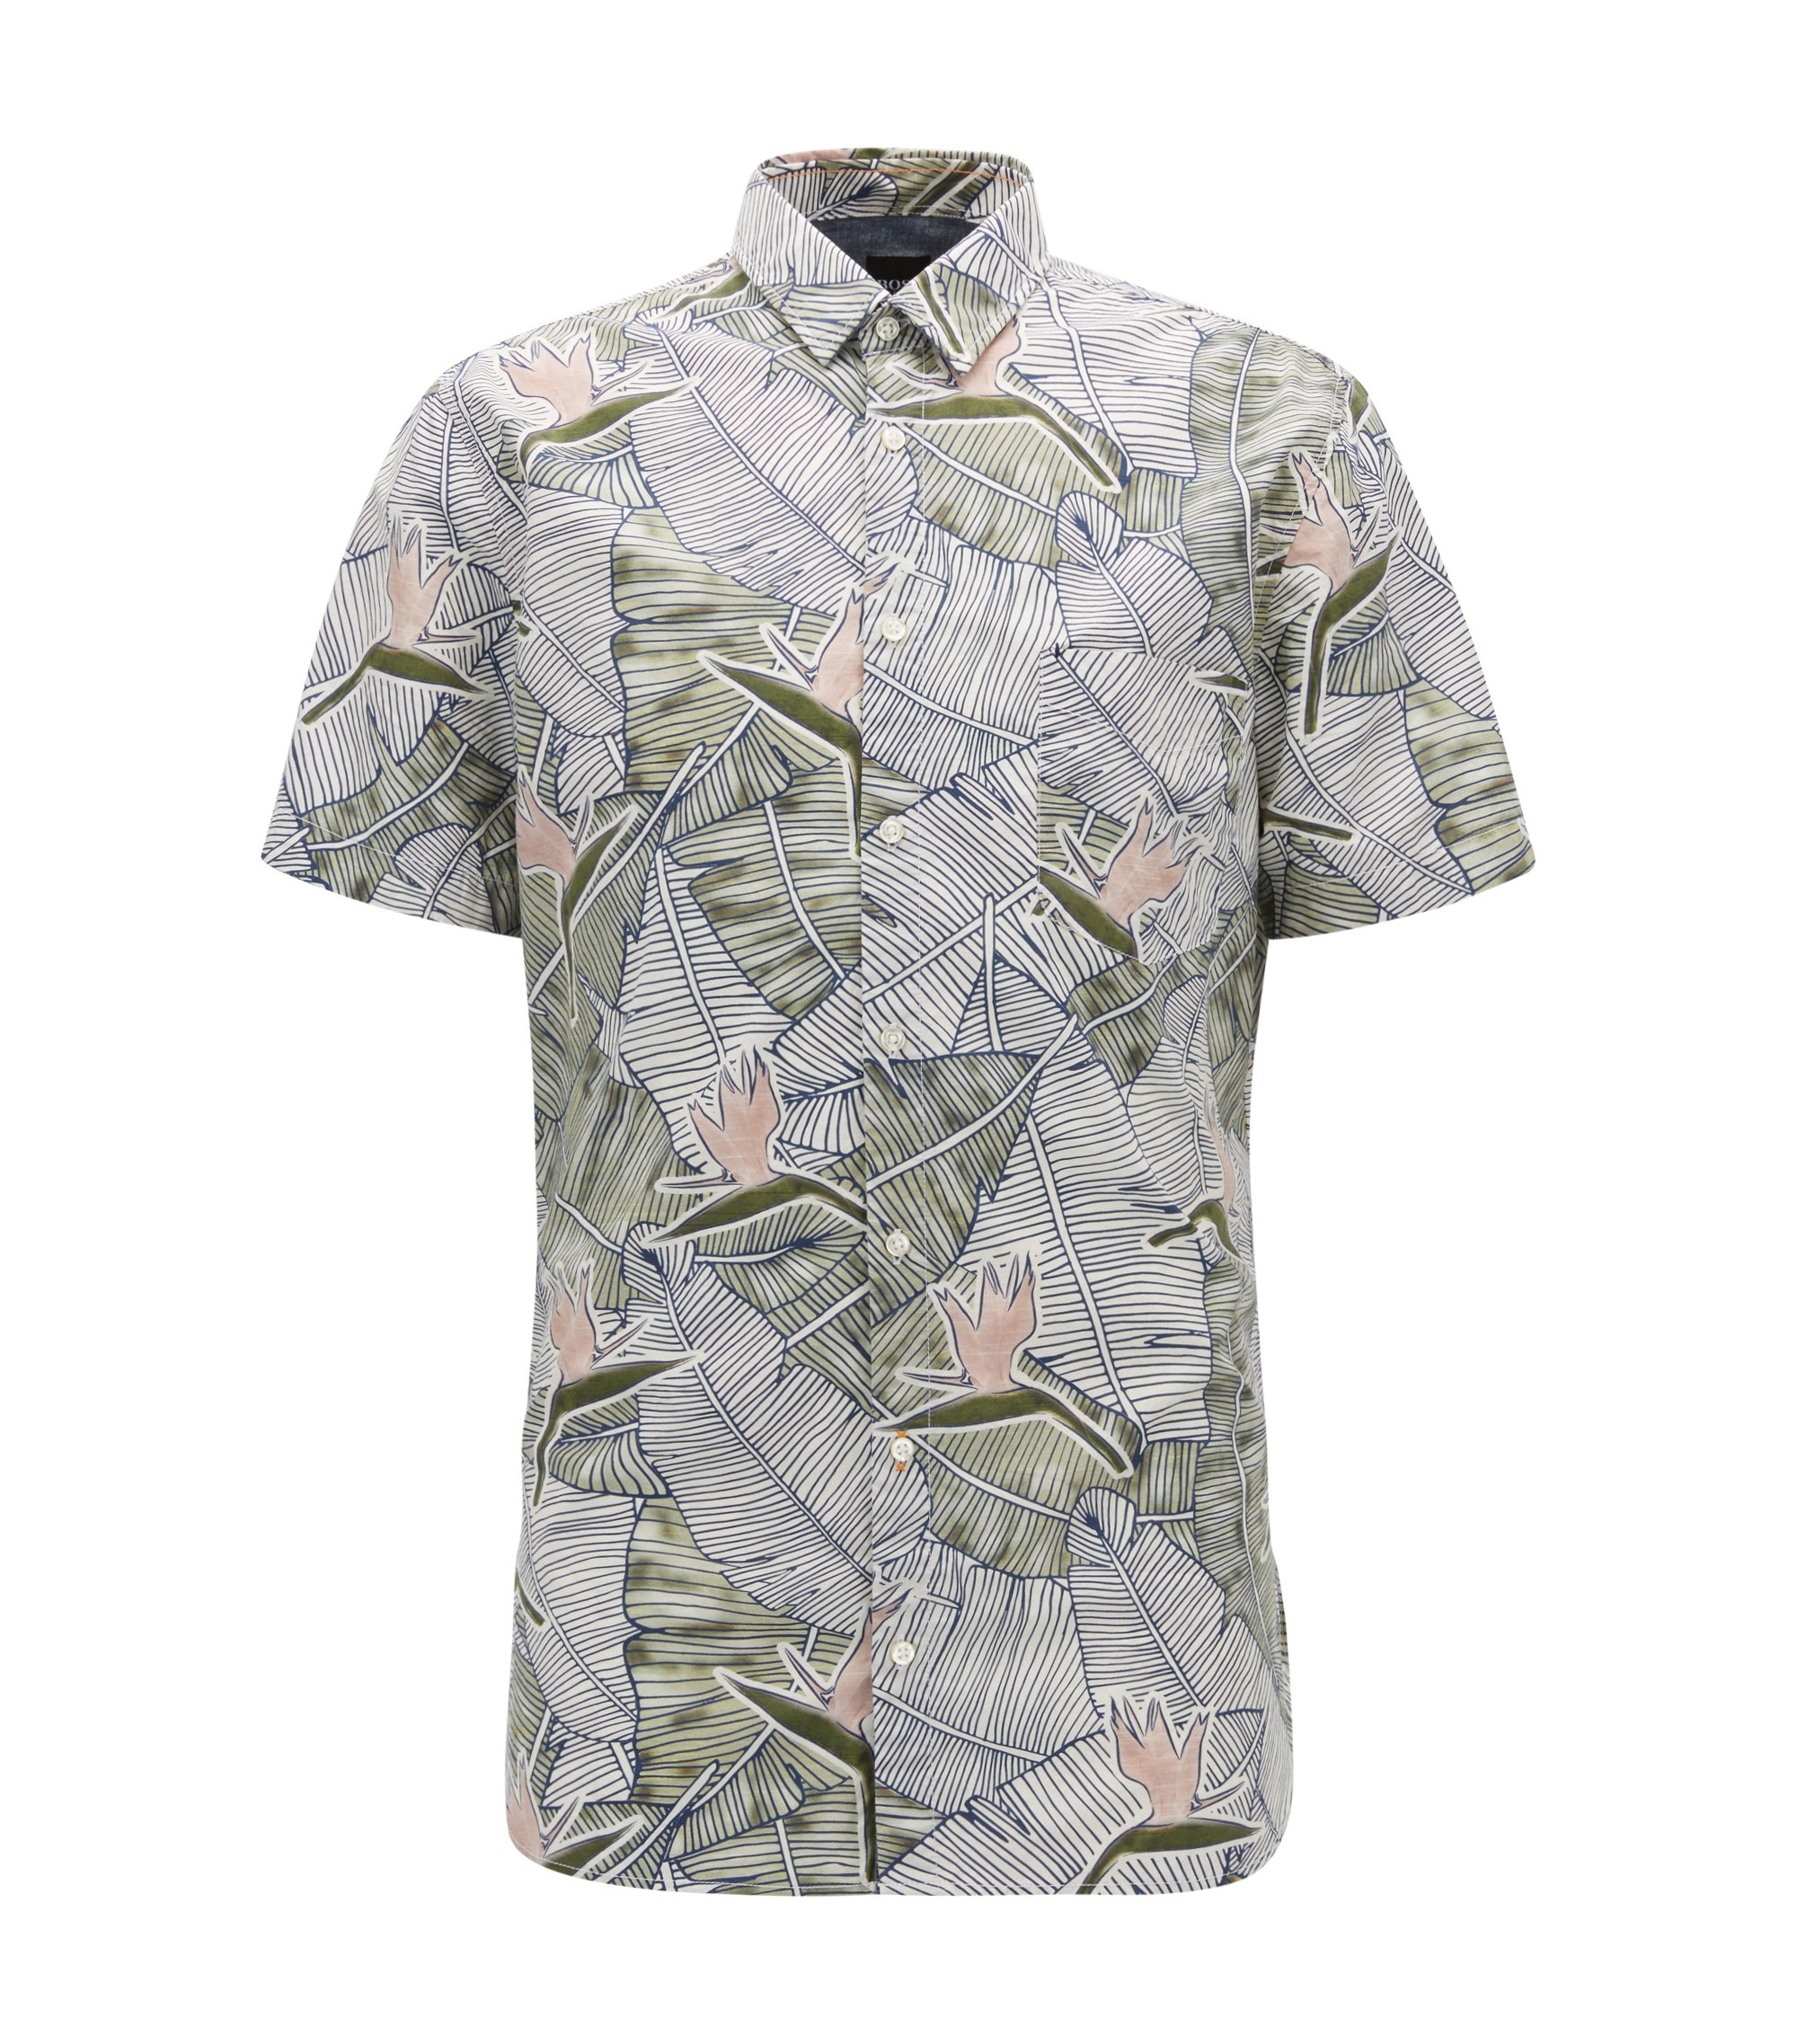 Slim-fit cotton shirt with bird-of-paradise print, Patterned